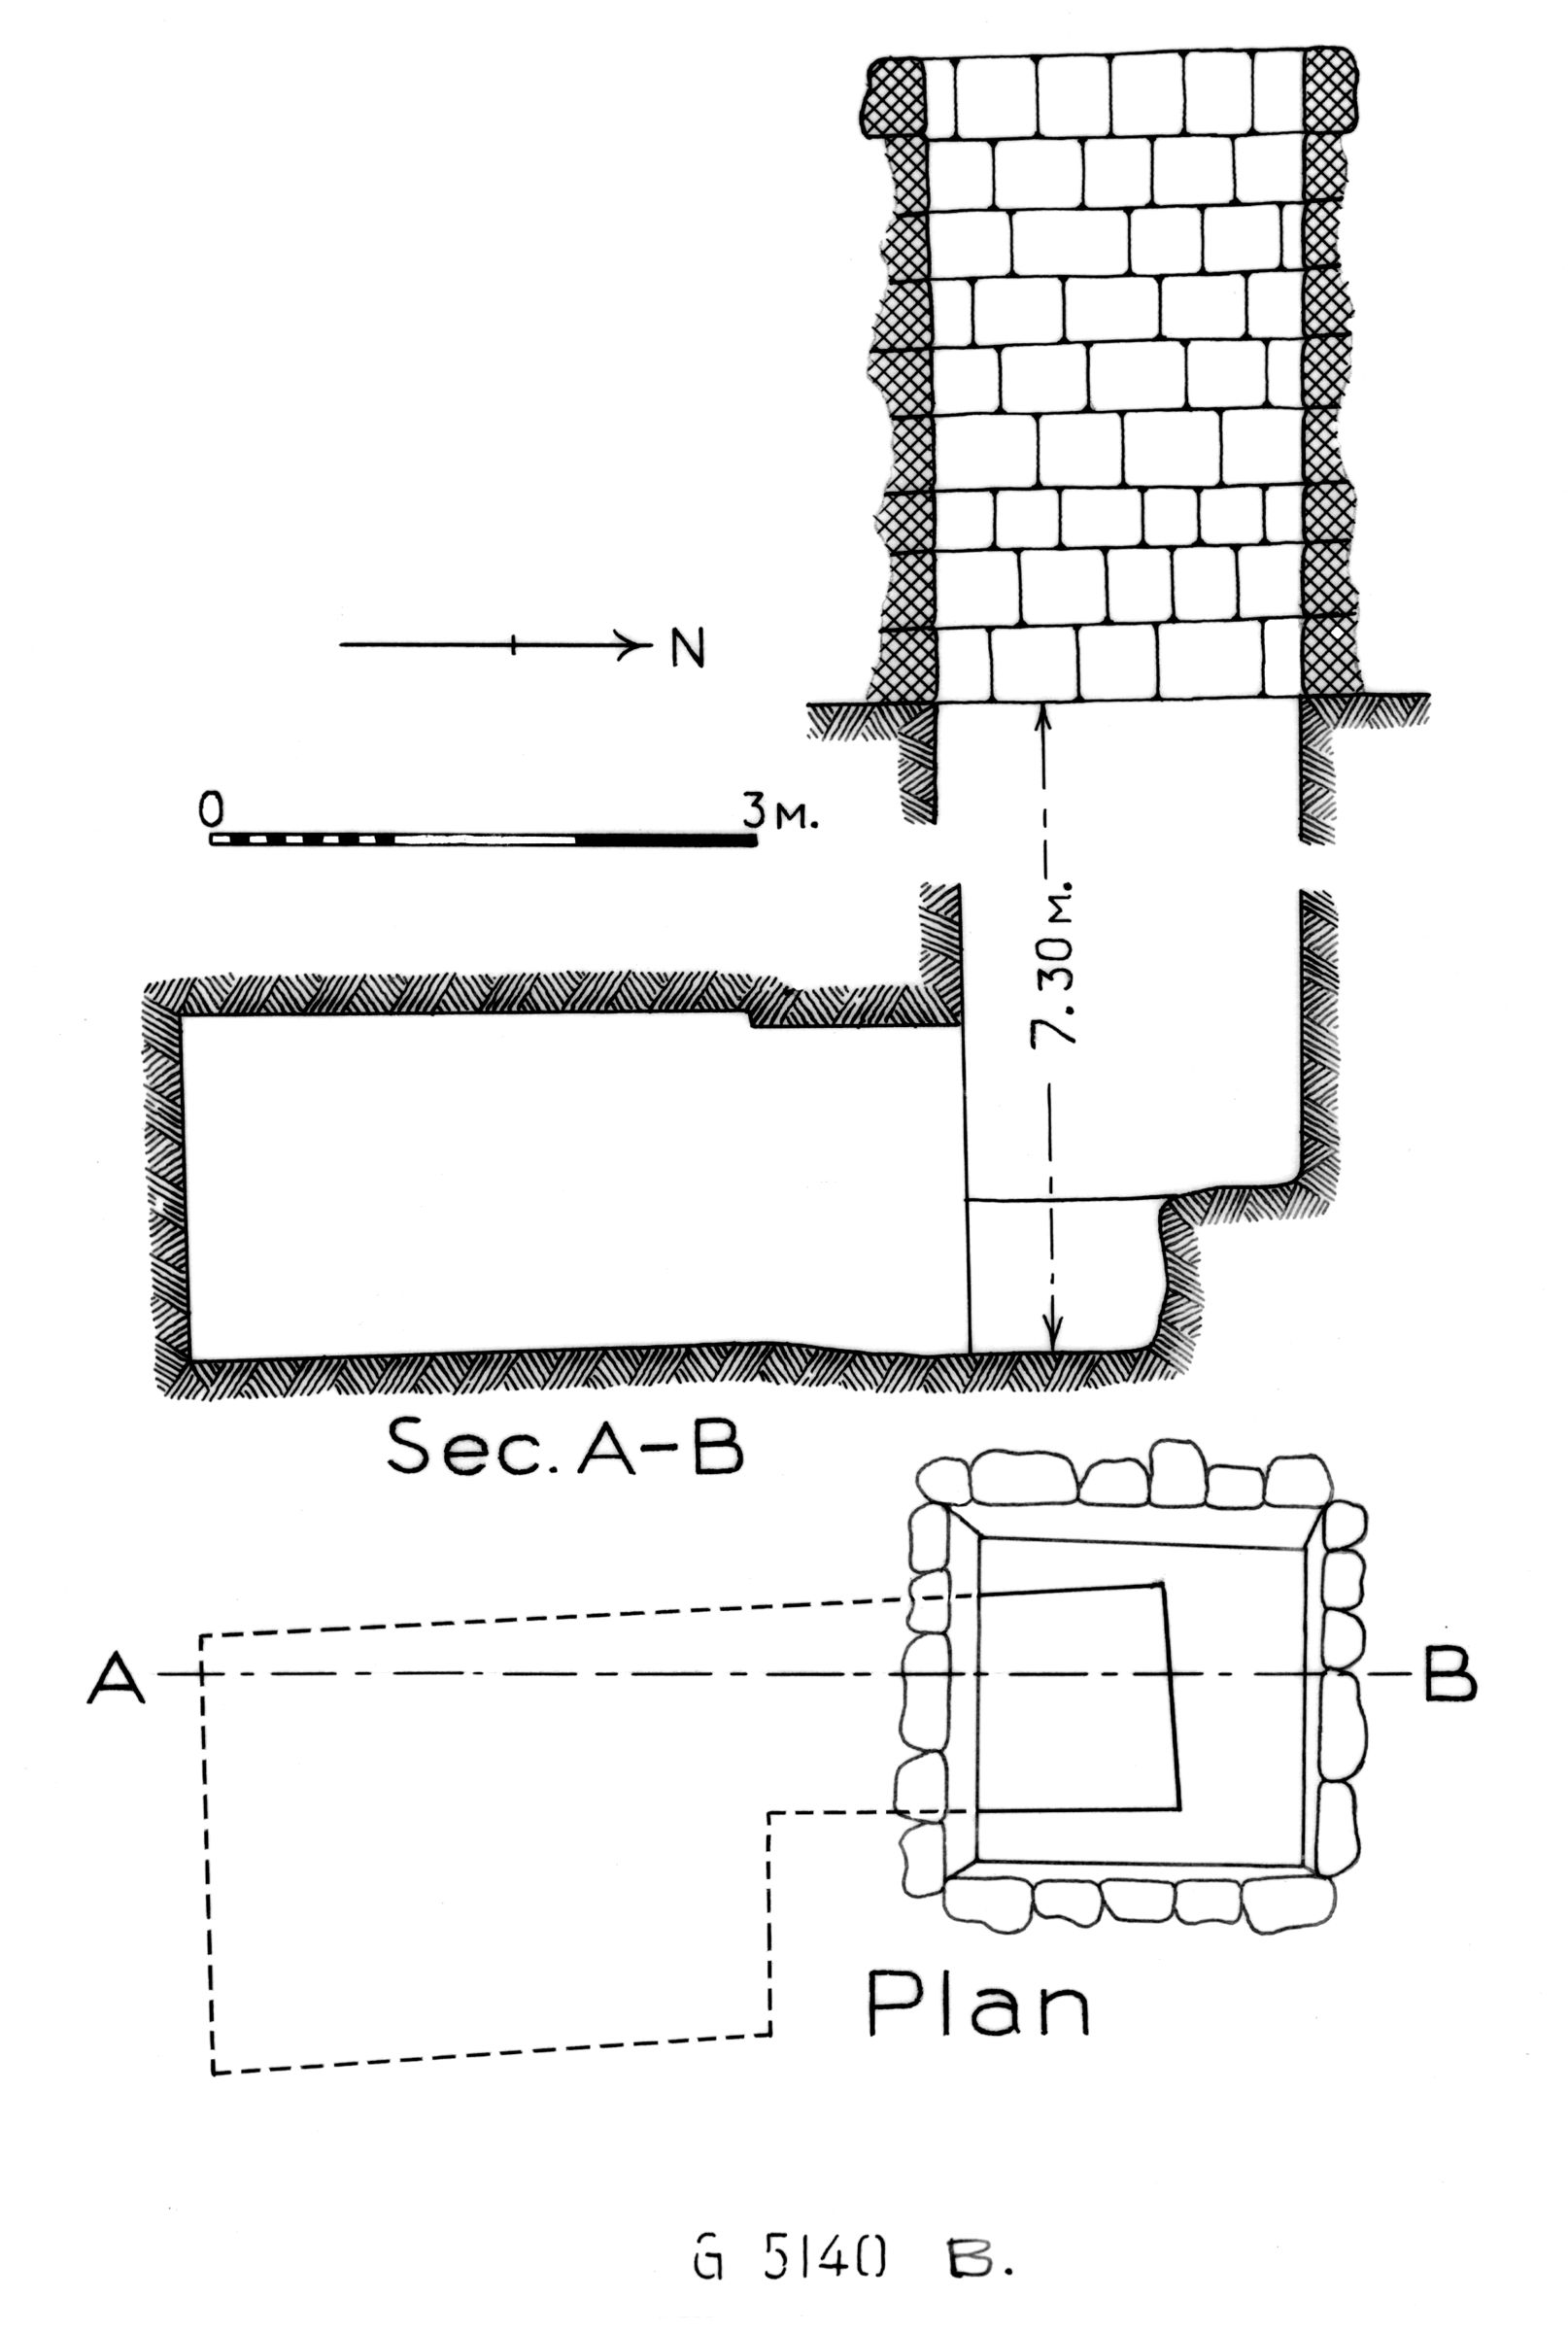 Maps and plans: G 5140, Shaft B